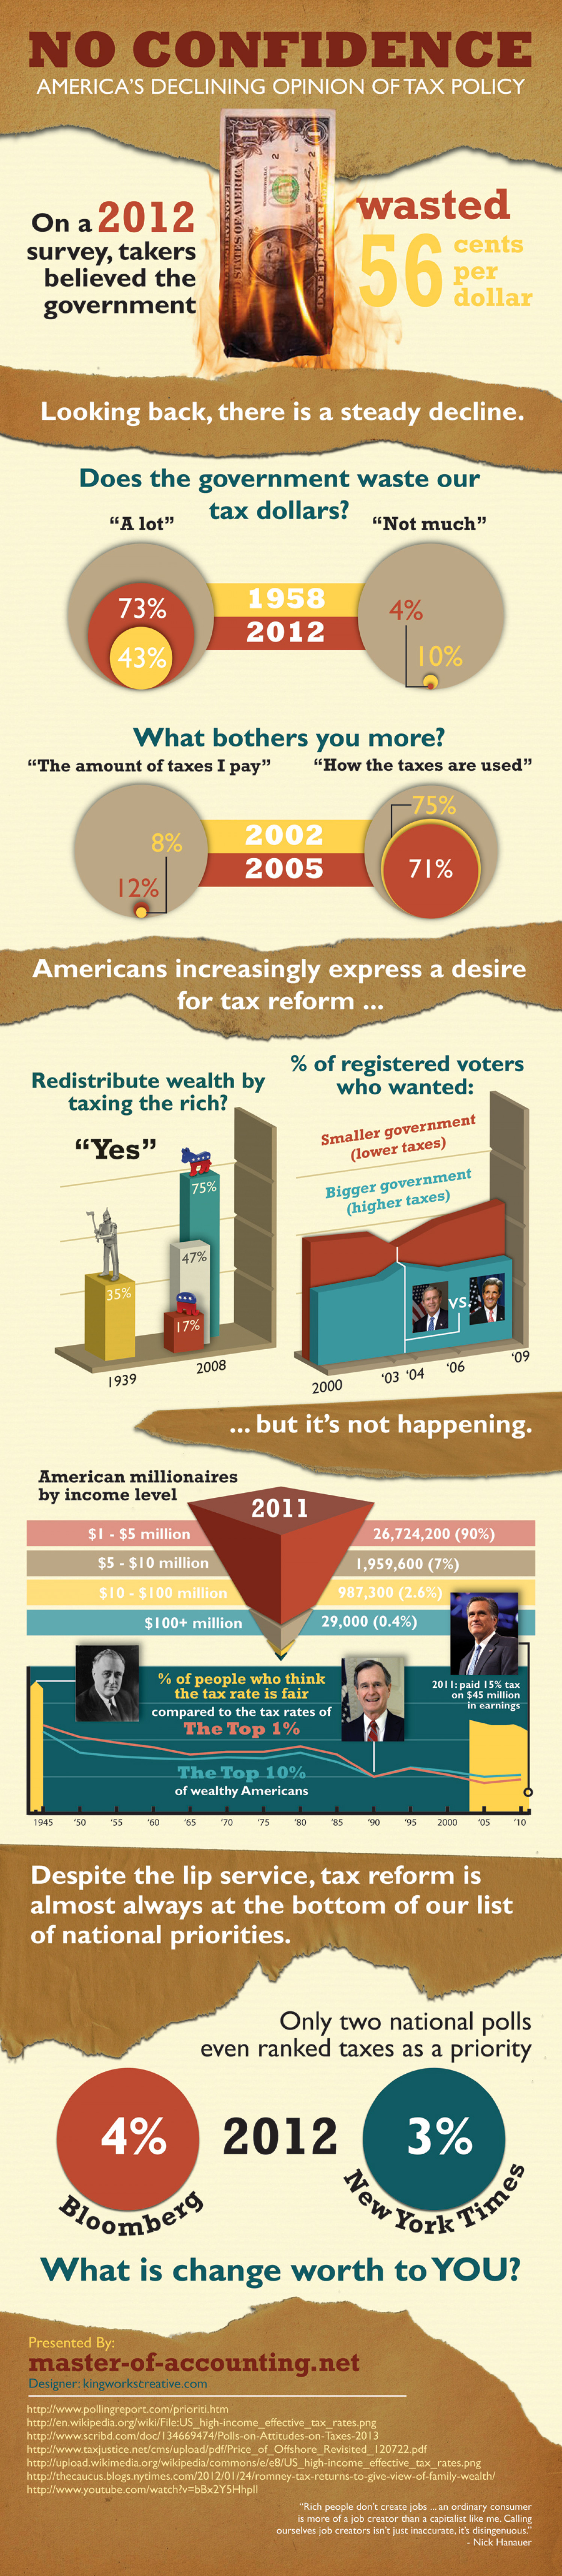 No Confidence: America's Declining Opinion of Tax Policy Infographic